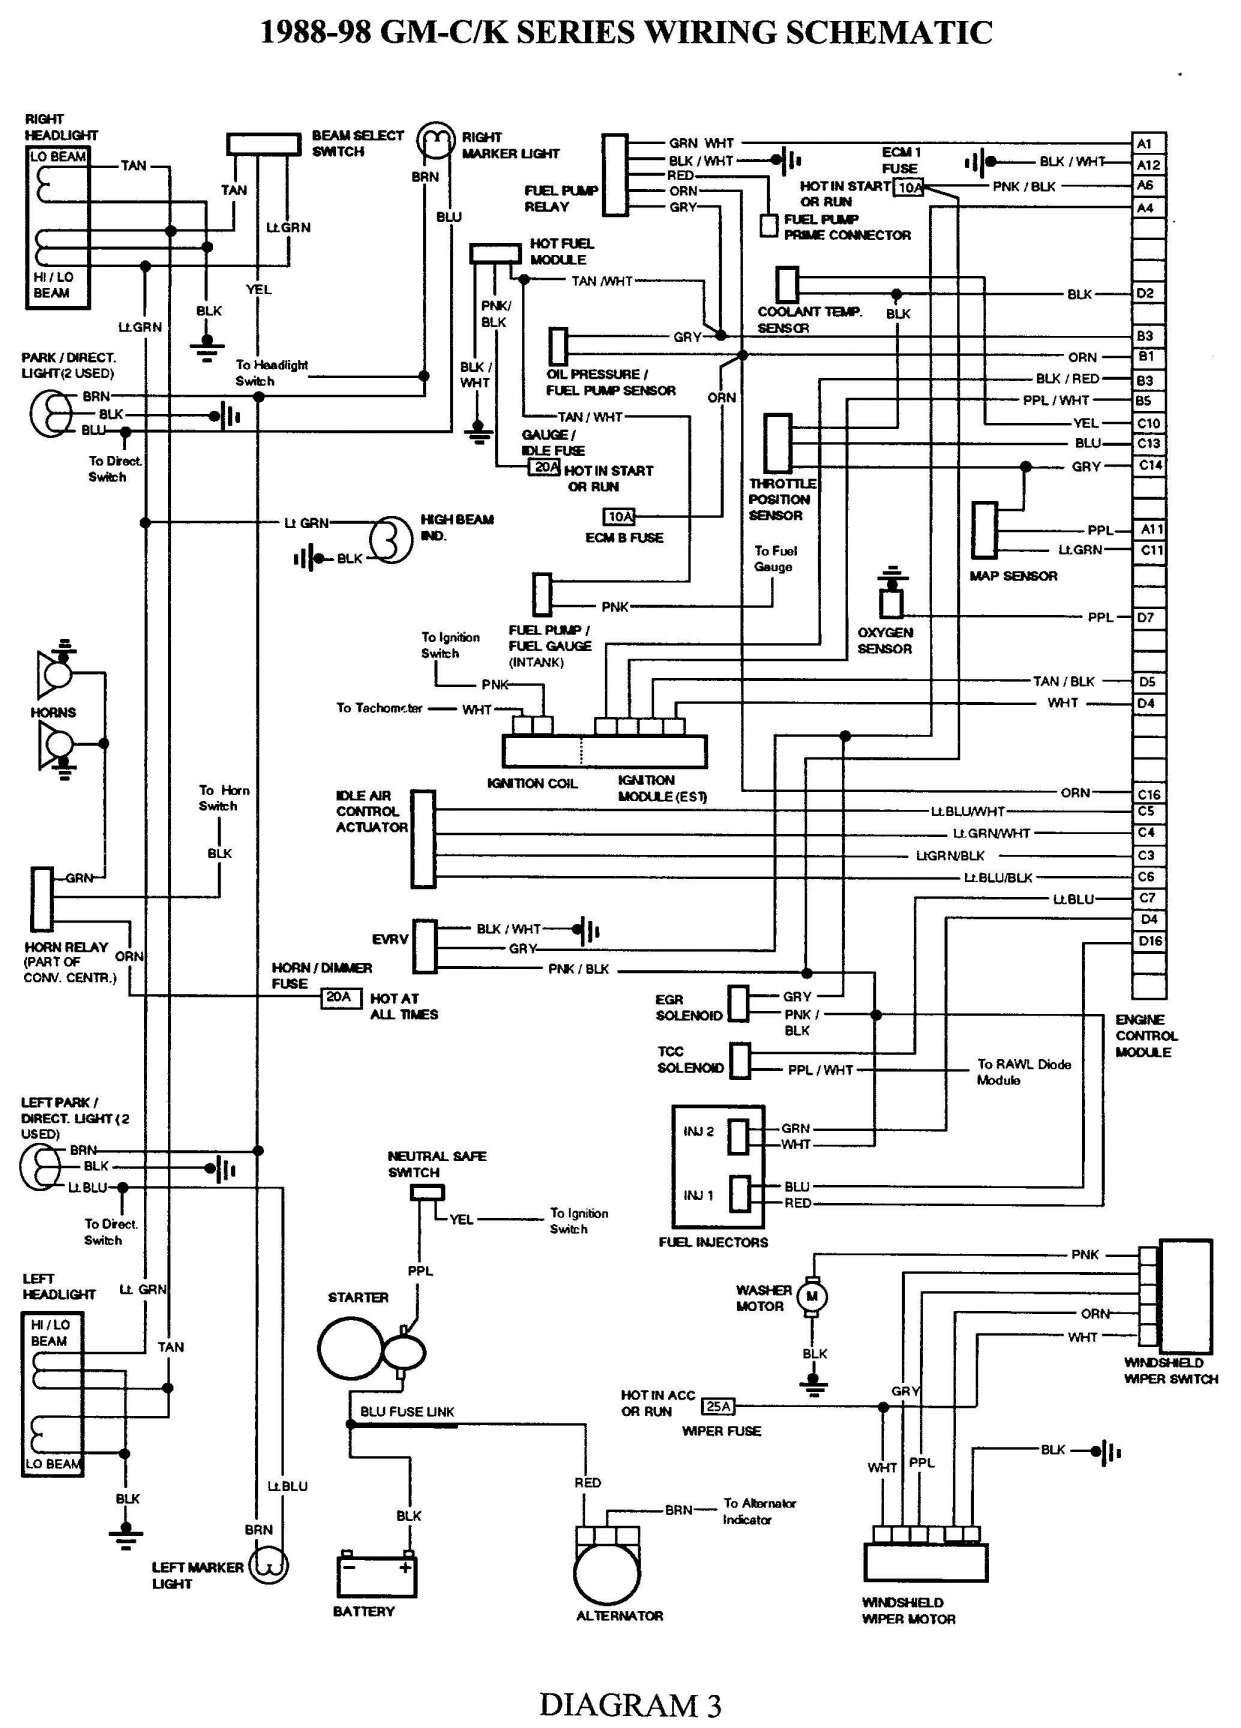 10 1986 Chevy Truck Engine Wiring Diagram Engine Diagram Wiringg Net In 2020 Electrical Diagram Chevy 1500 Electrical Wiring Diagram